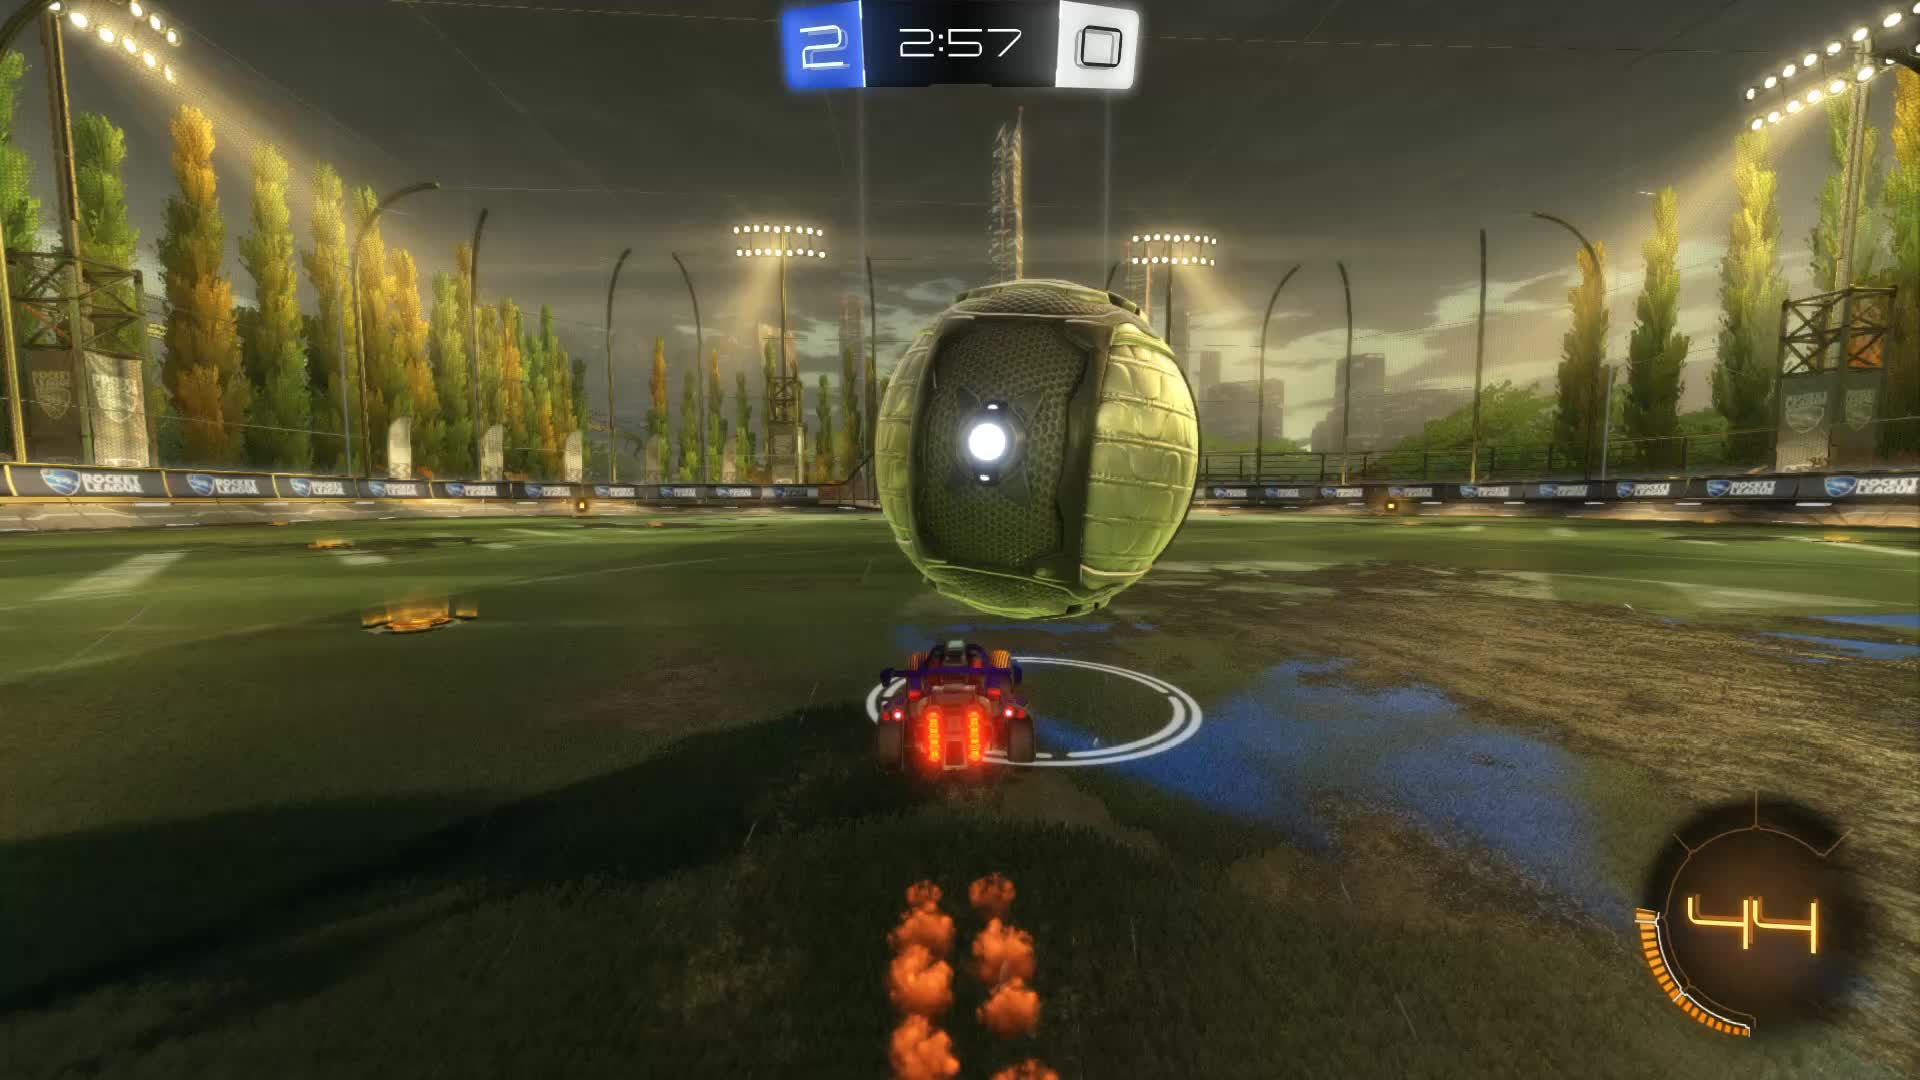 Gif Your Game, GifYourGame, Nyhx, Rocket League, RocketLeague, Shot, Shot 8: Nyhx GIFs